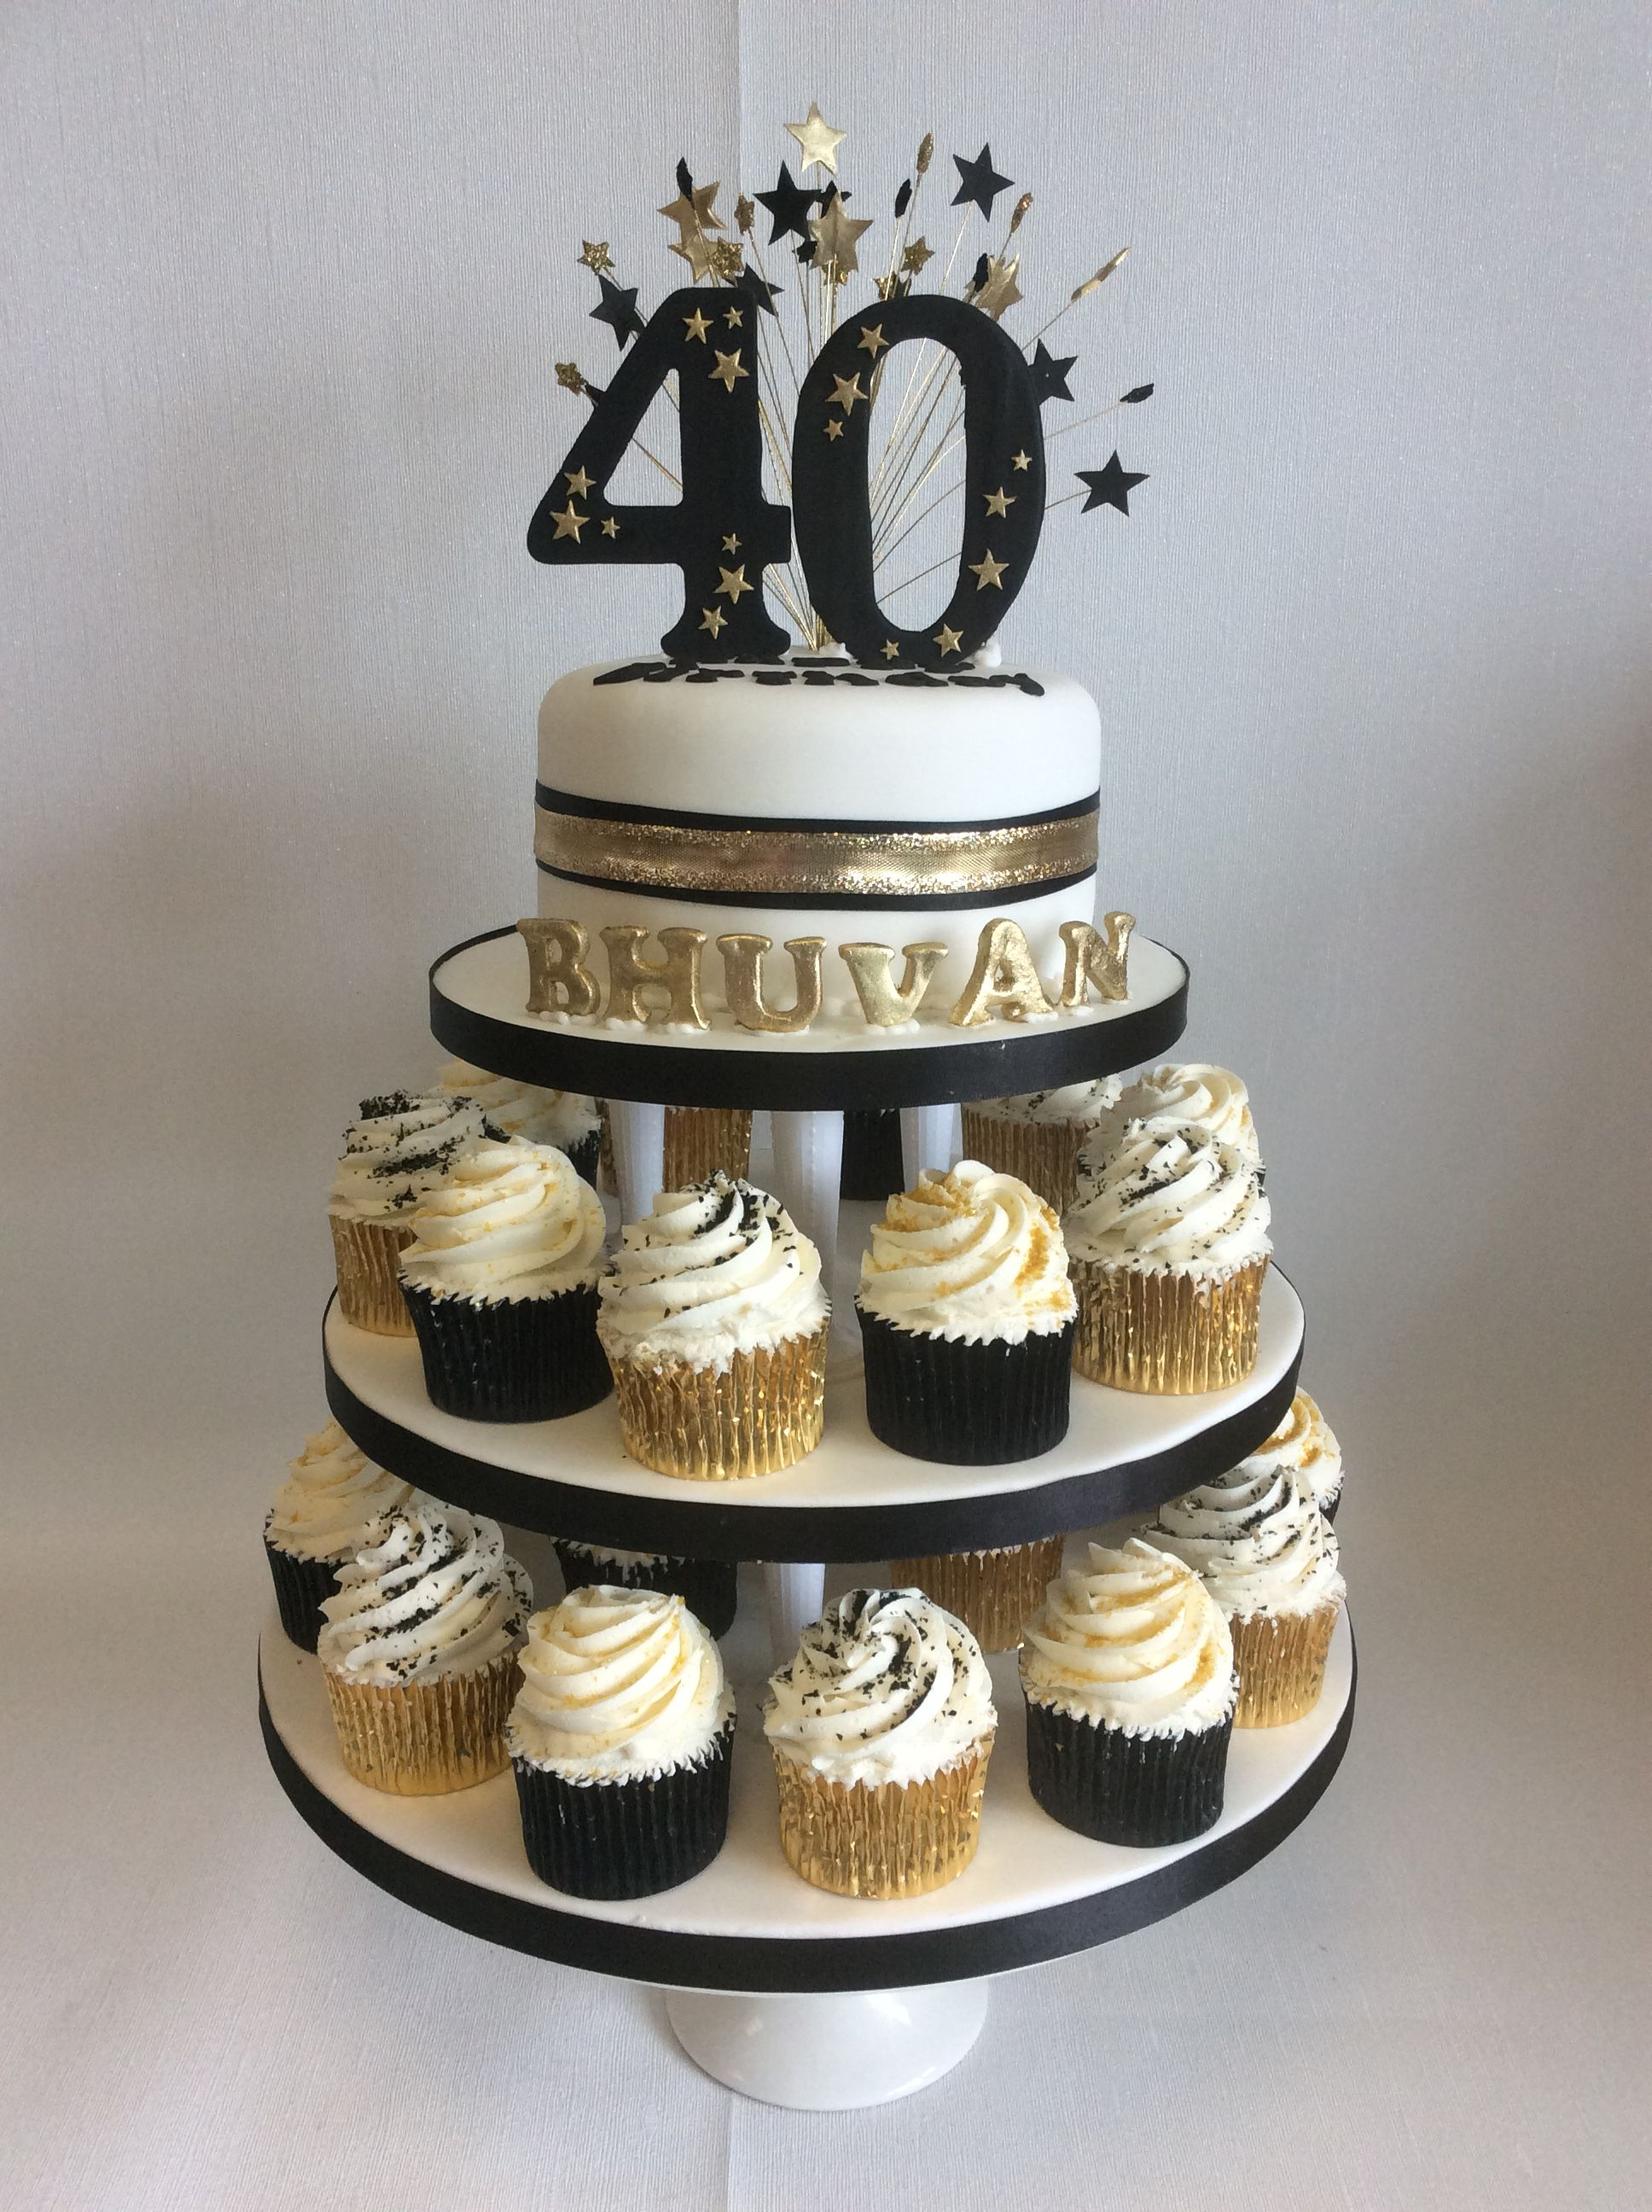 Small Display Of Black Gold Themed Cup Cakes With Top Tier For